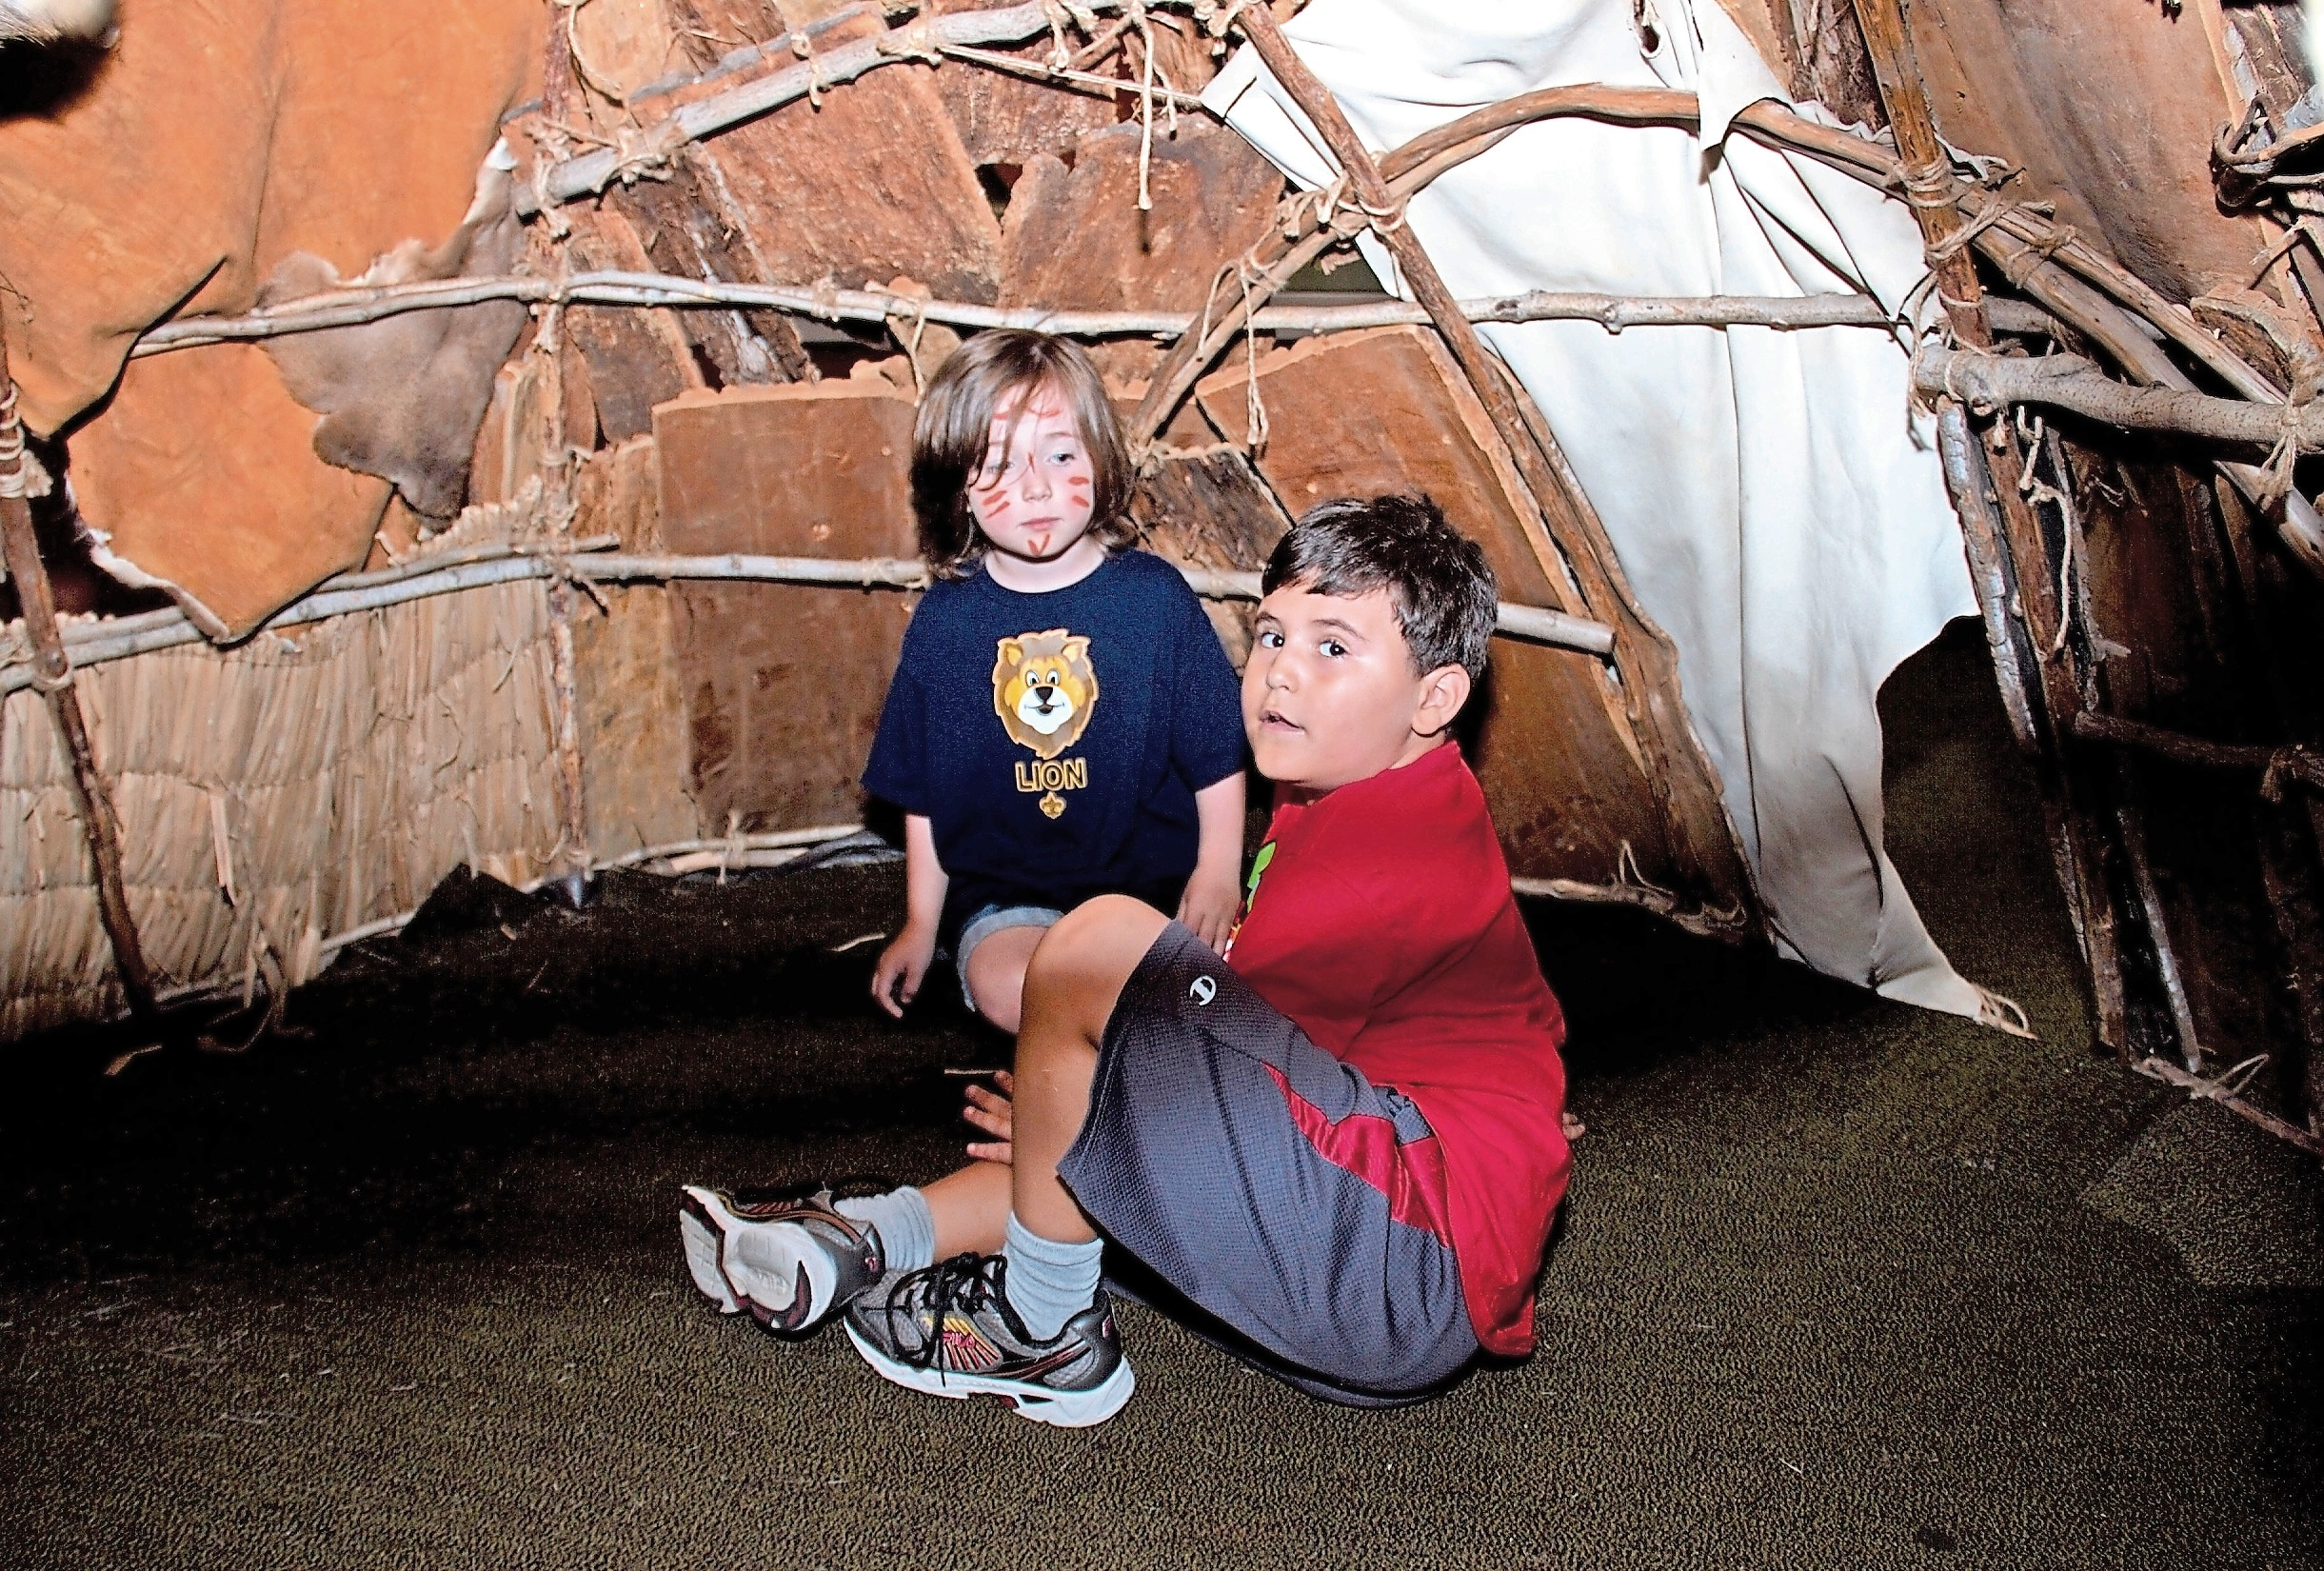 There is always plenty for children to do at the museum, which is marking its 50th anniversary. Declan Brosnan, 5, left, and Benjamin Attias, 6, explored a wigwam.